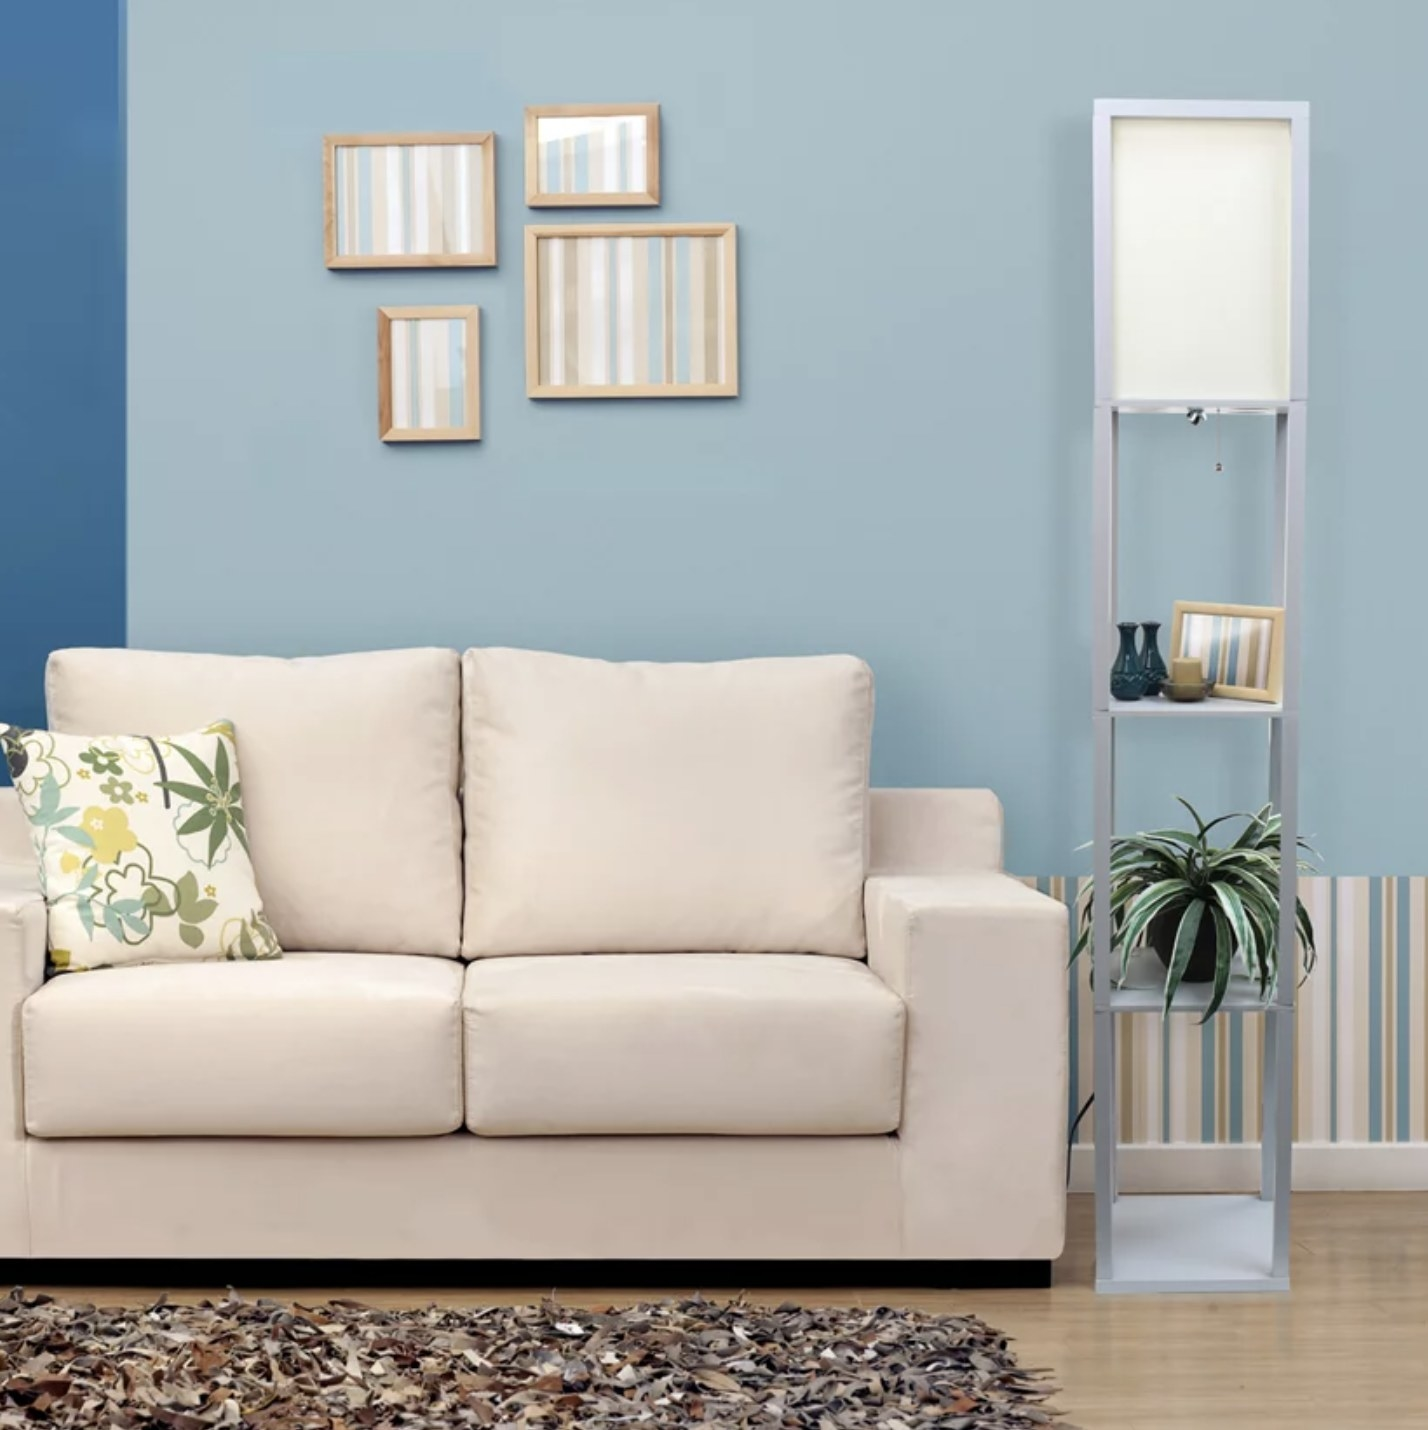 A white etagere lamp with shelves